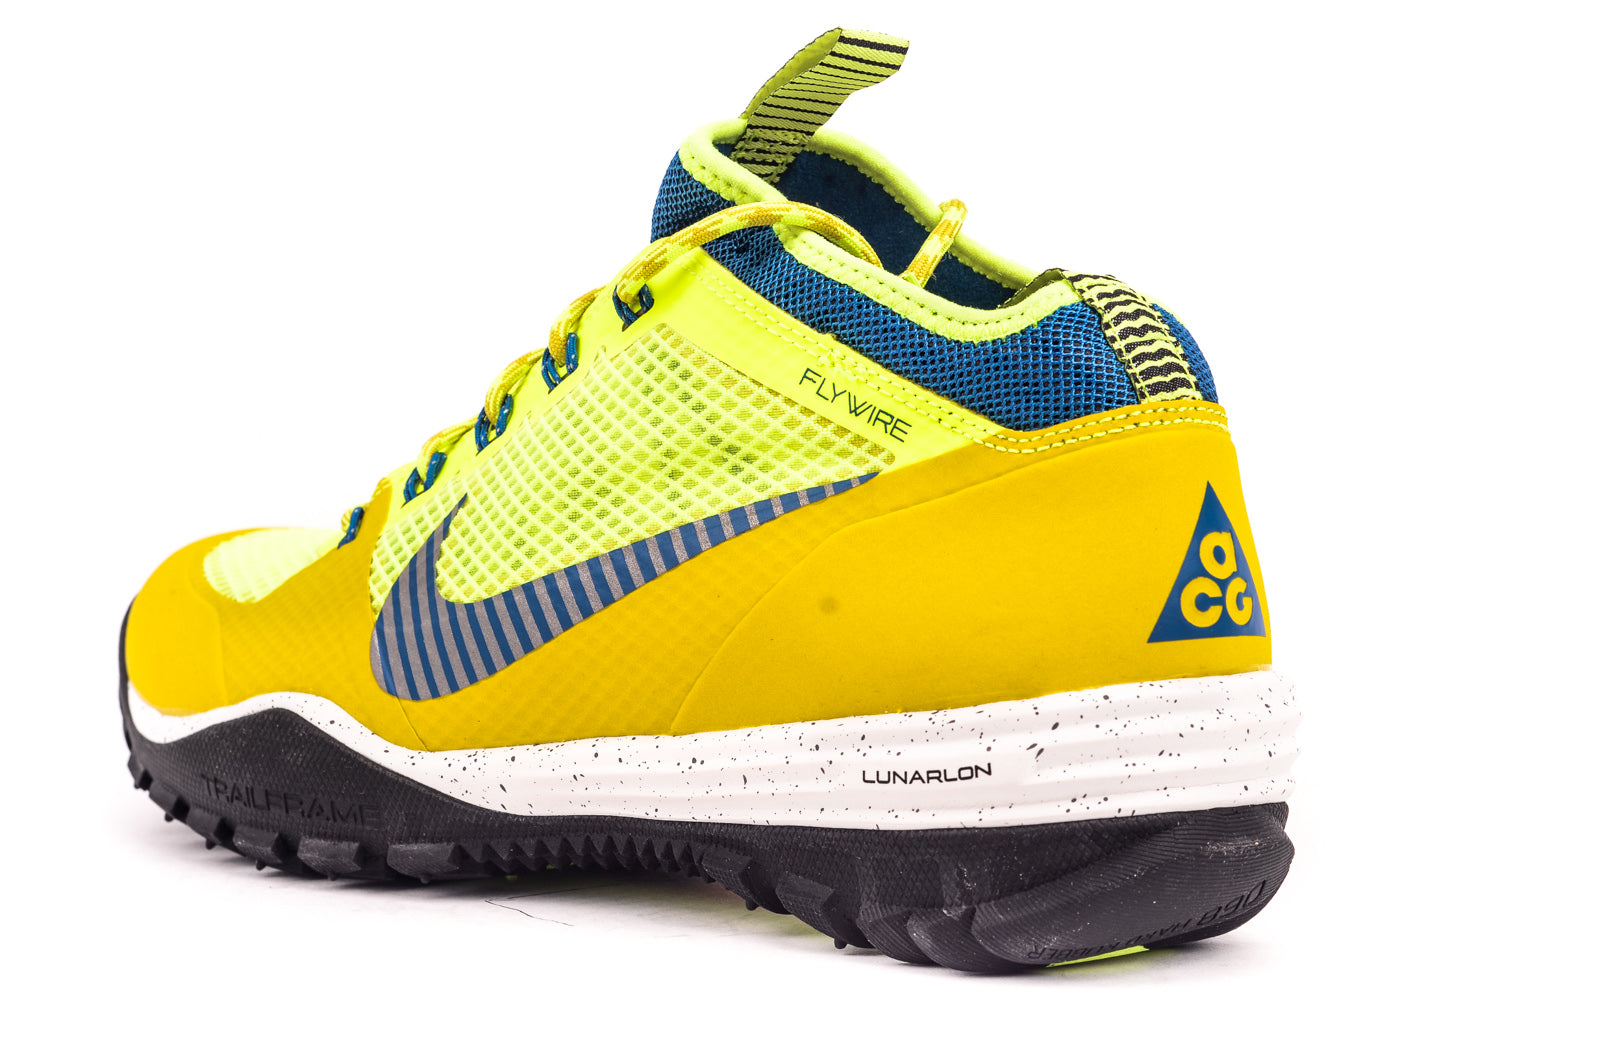 3f3a009fd20a Nike Lunar Incognito ACG Bright Citron and Black colorways will be  releasing at Capsule 29 Bellair St. on Friday Feb.28th.2014